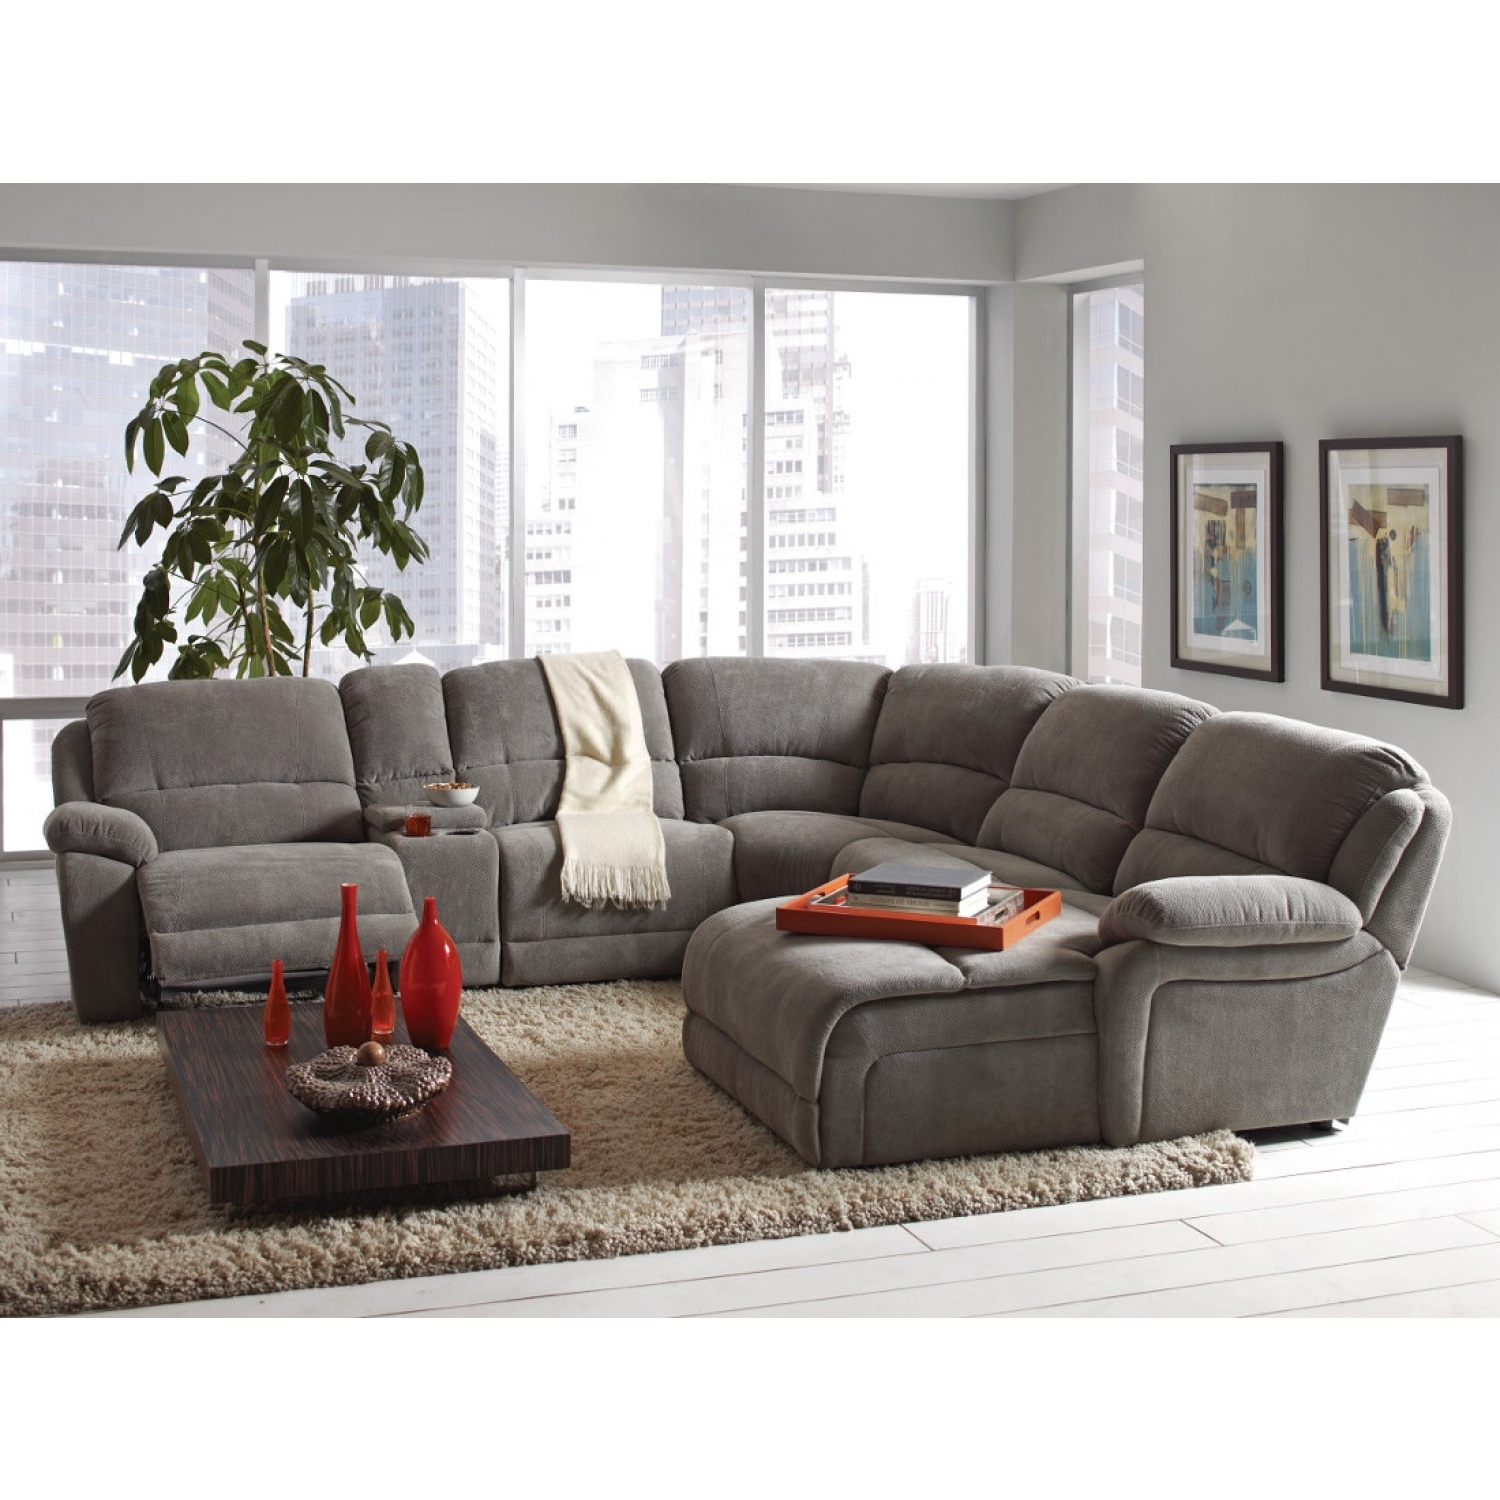 Famous Pittsburgh Sectional Sofas Pertaining To Coaster Mackenzie Silver 6 Piece Reclining Sectional Sofa With (View 3 of 15)